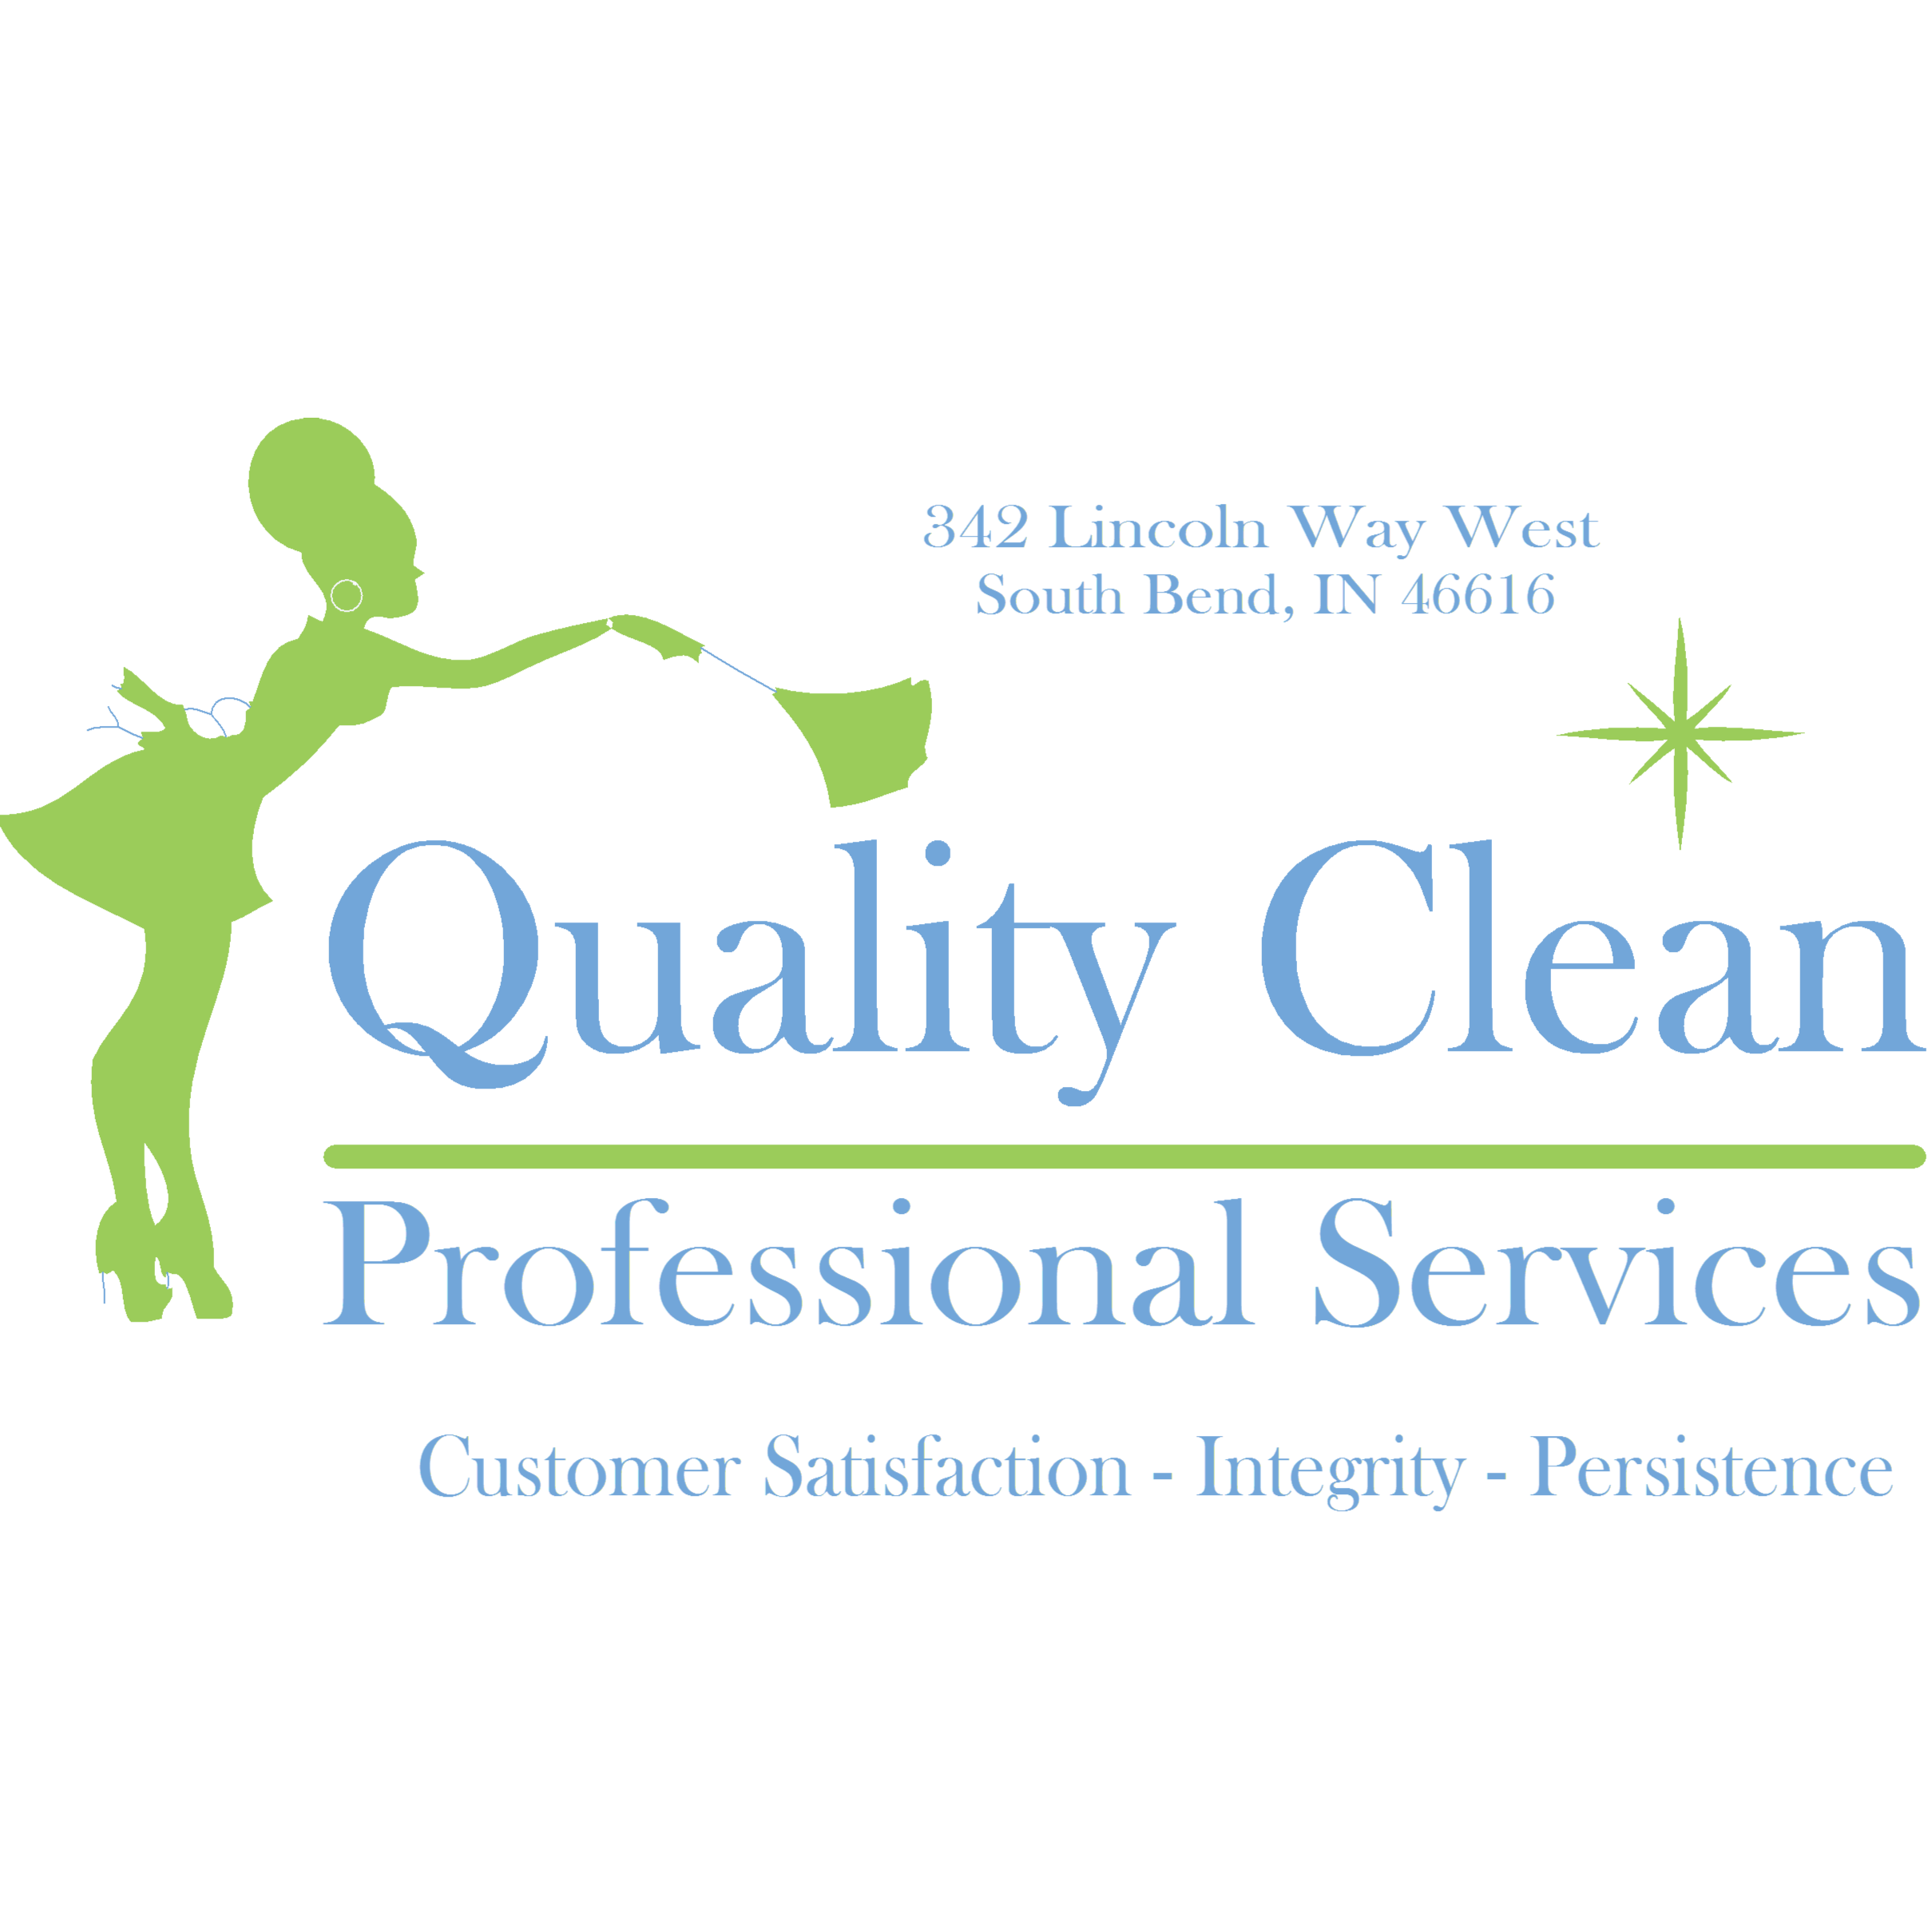 Quality Clean Professional Services